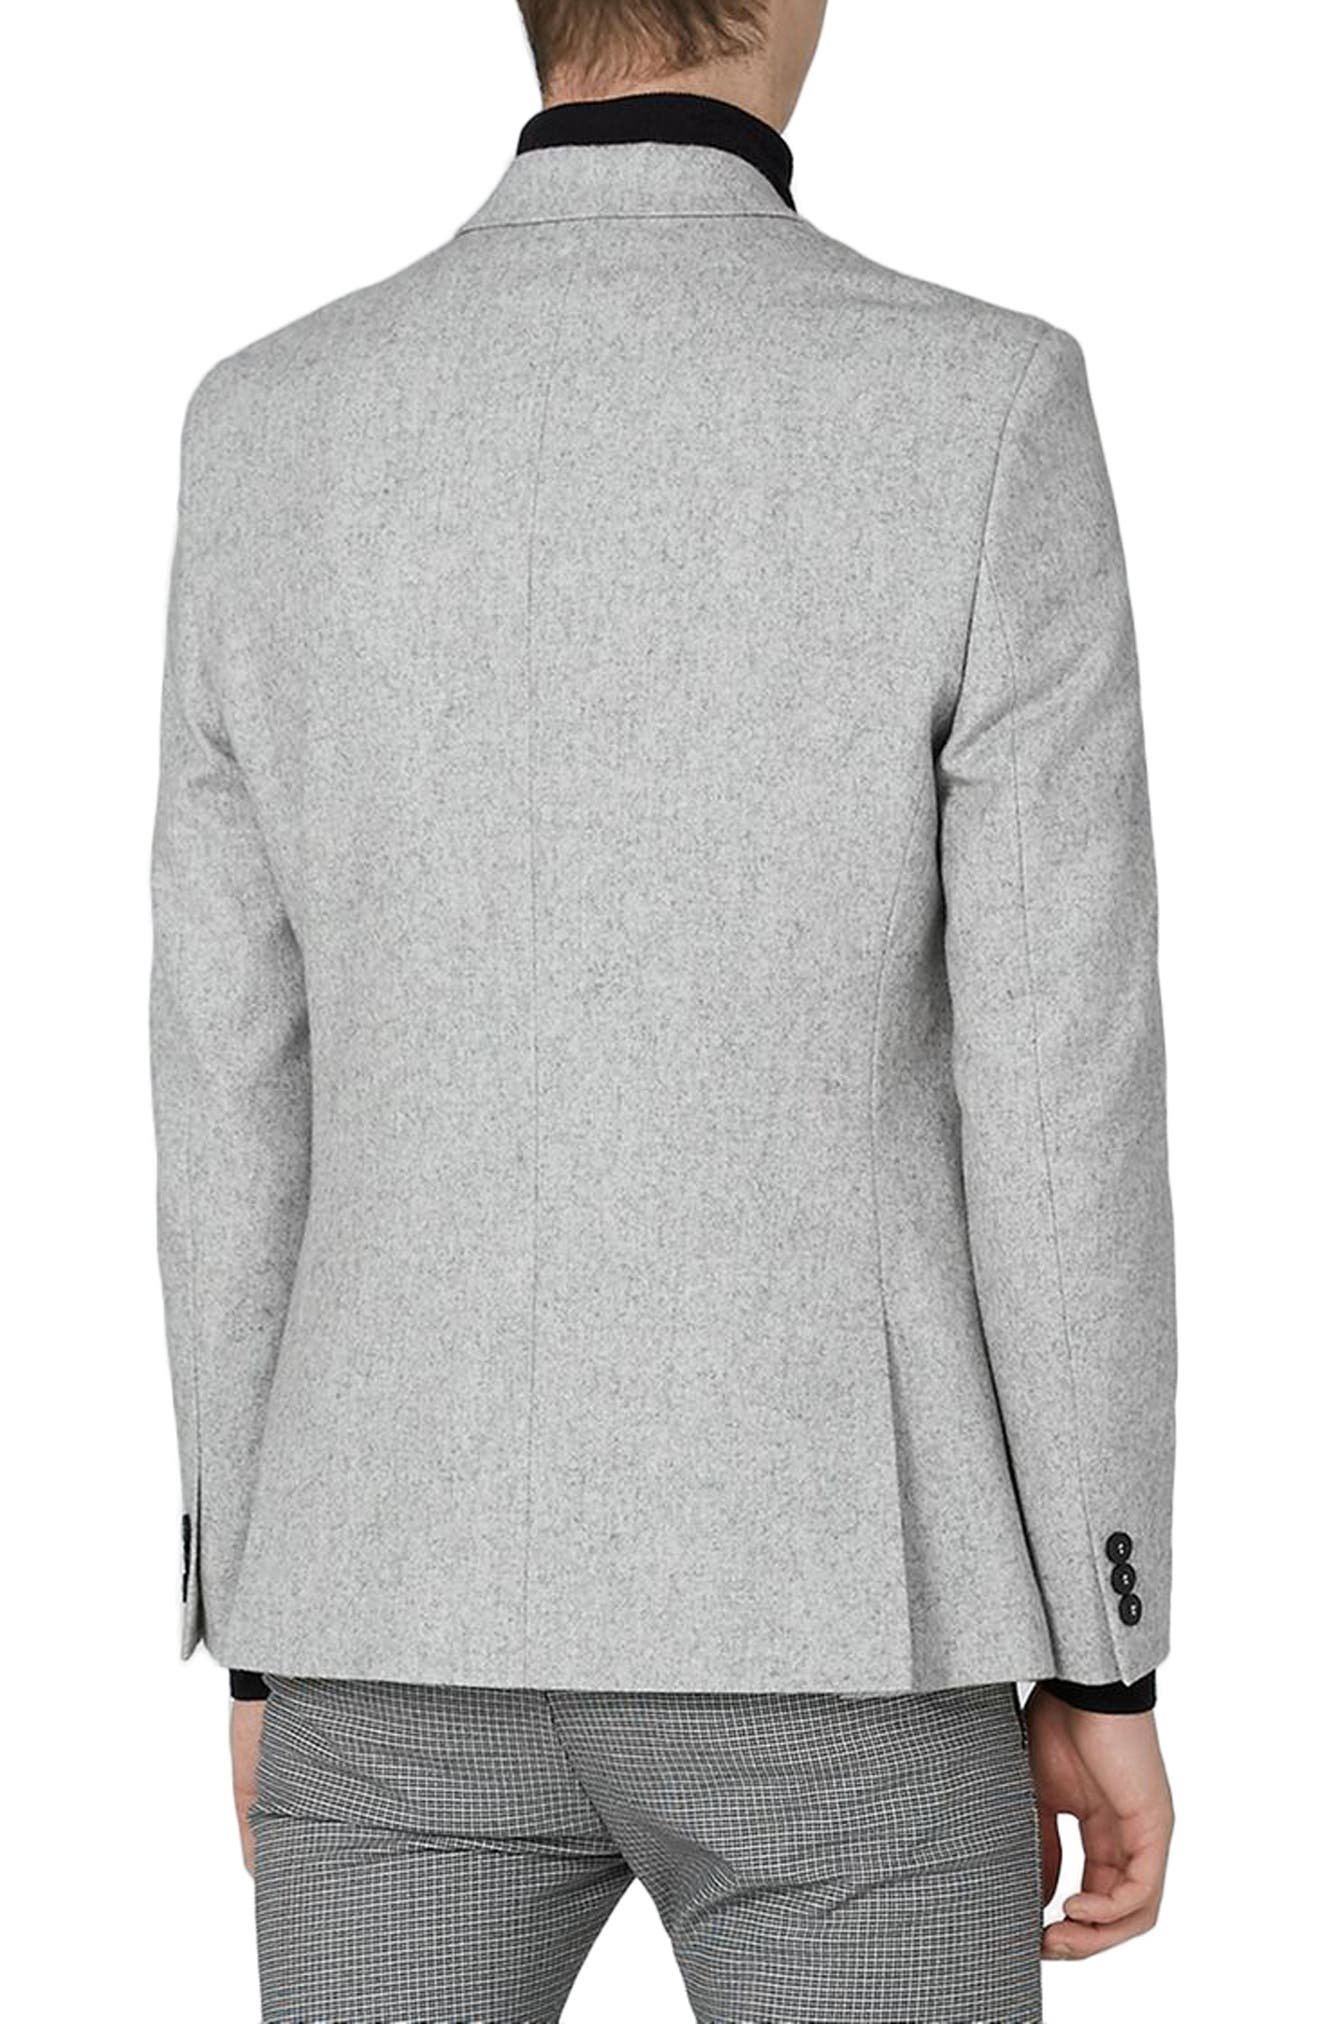 Murdoch One-Button Jacket,                             Alternate thumbnail 2, color,                             Light Grey